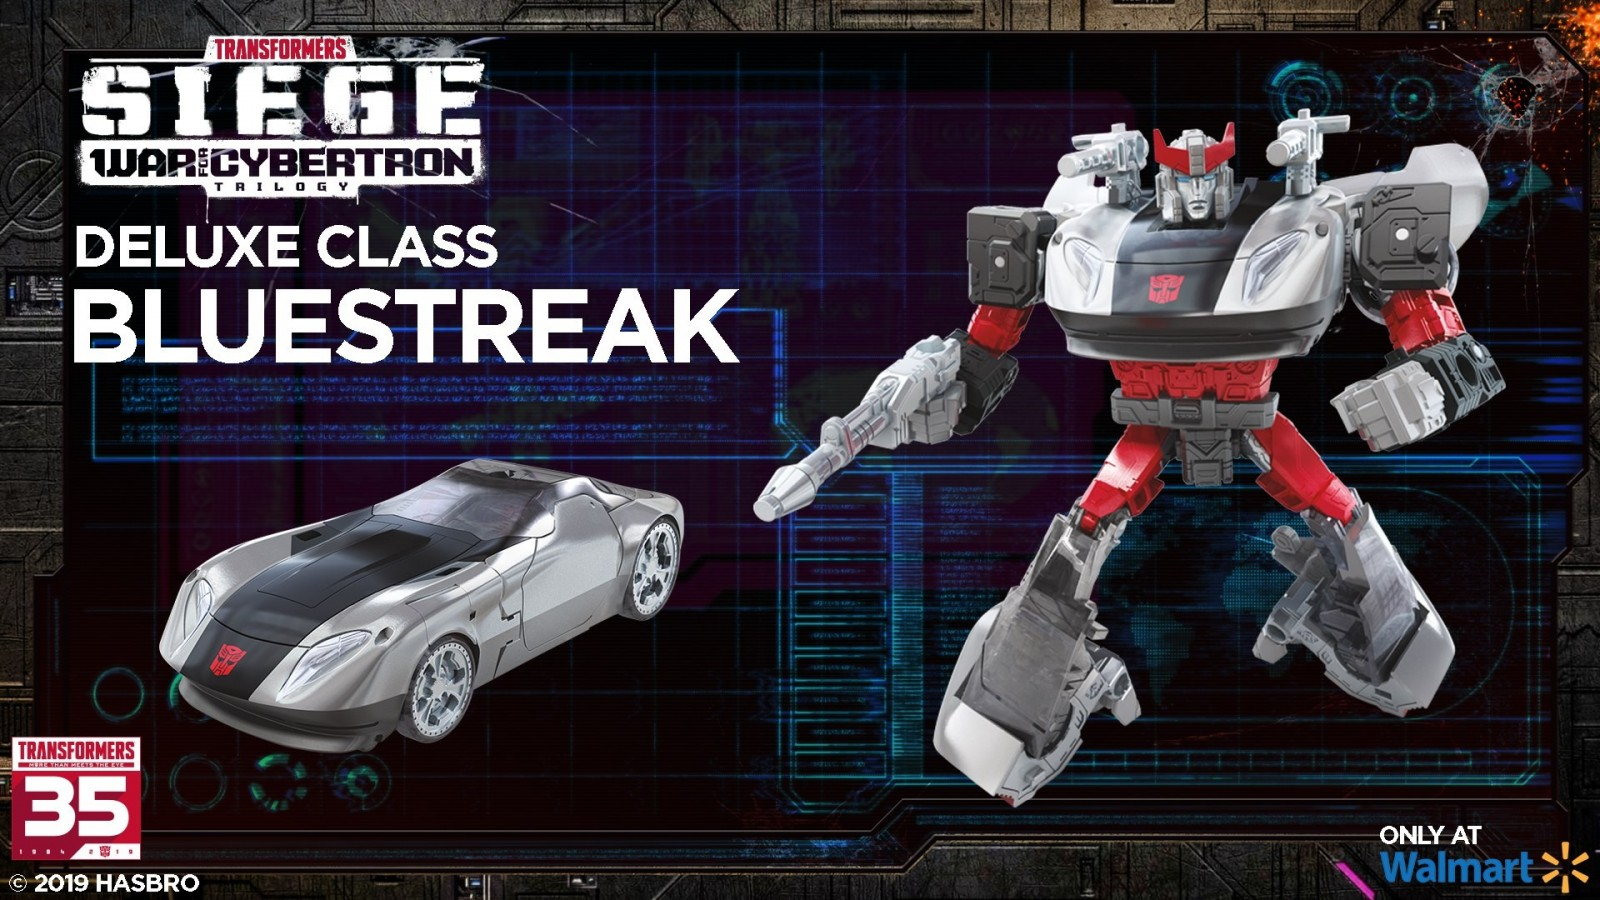 Transformers News: Re: Transformers War for Cybertron: Siege Discussion Thread